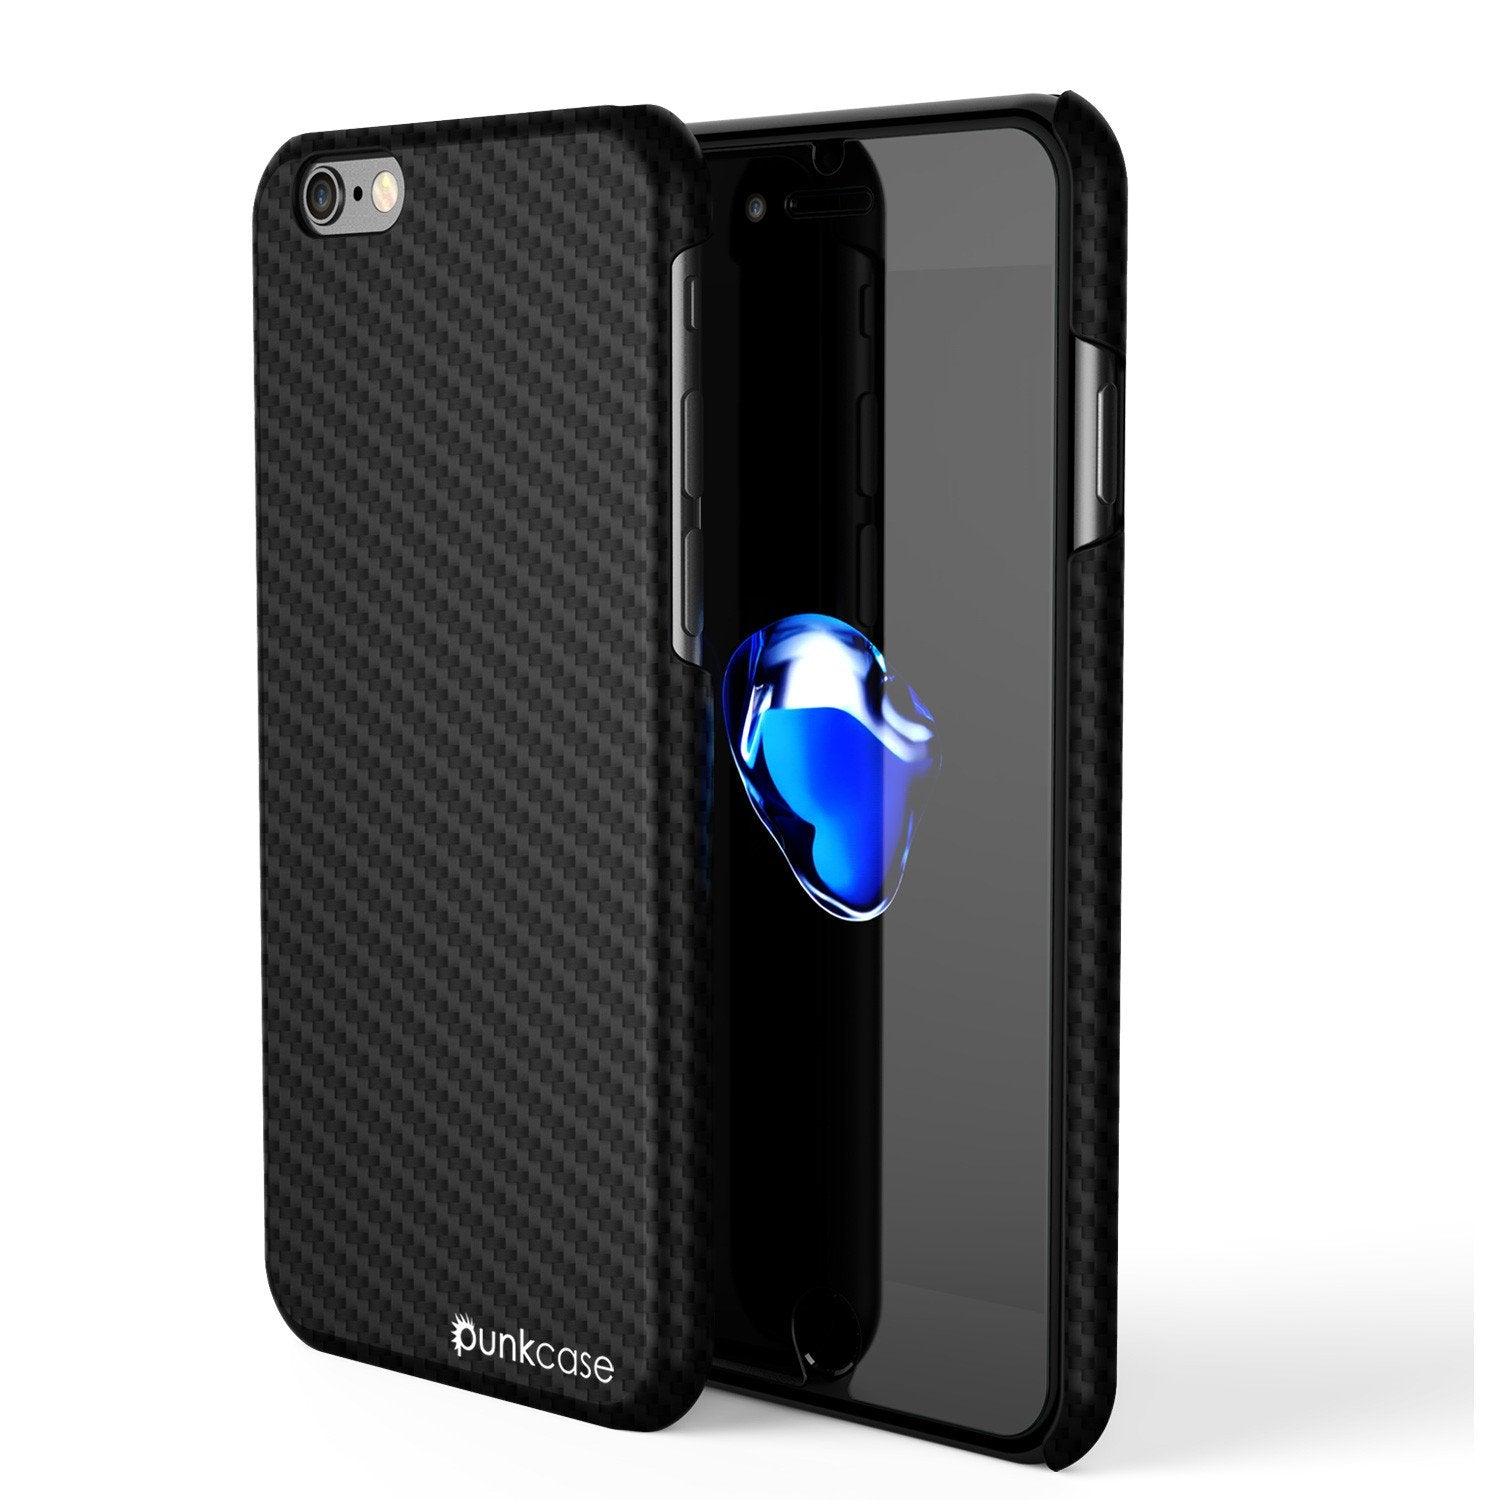 iPhone 8 Case, Punkcase CarbonShield Jet Black with 0.3mm Tempered Glass